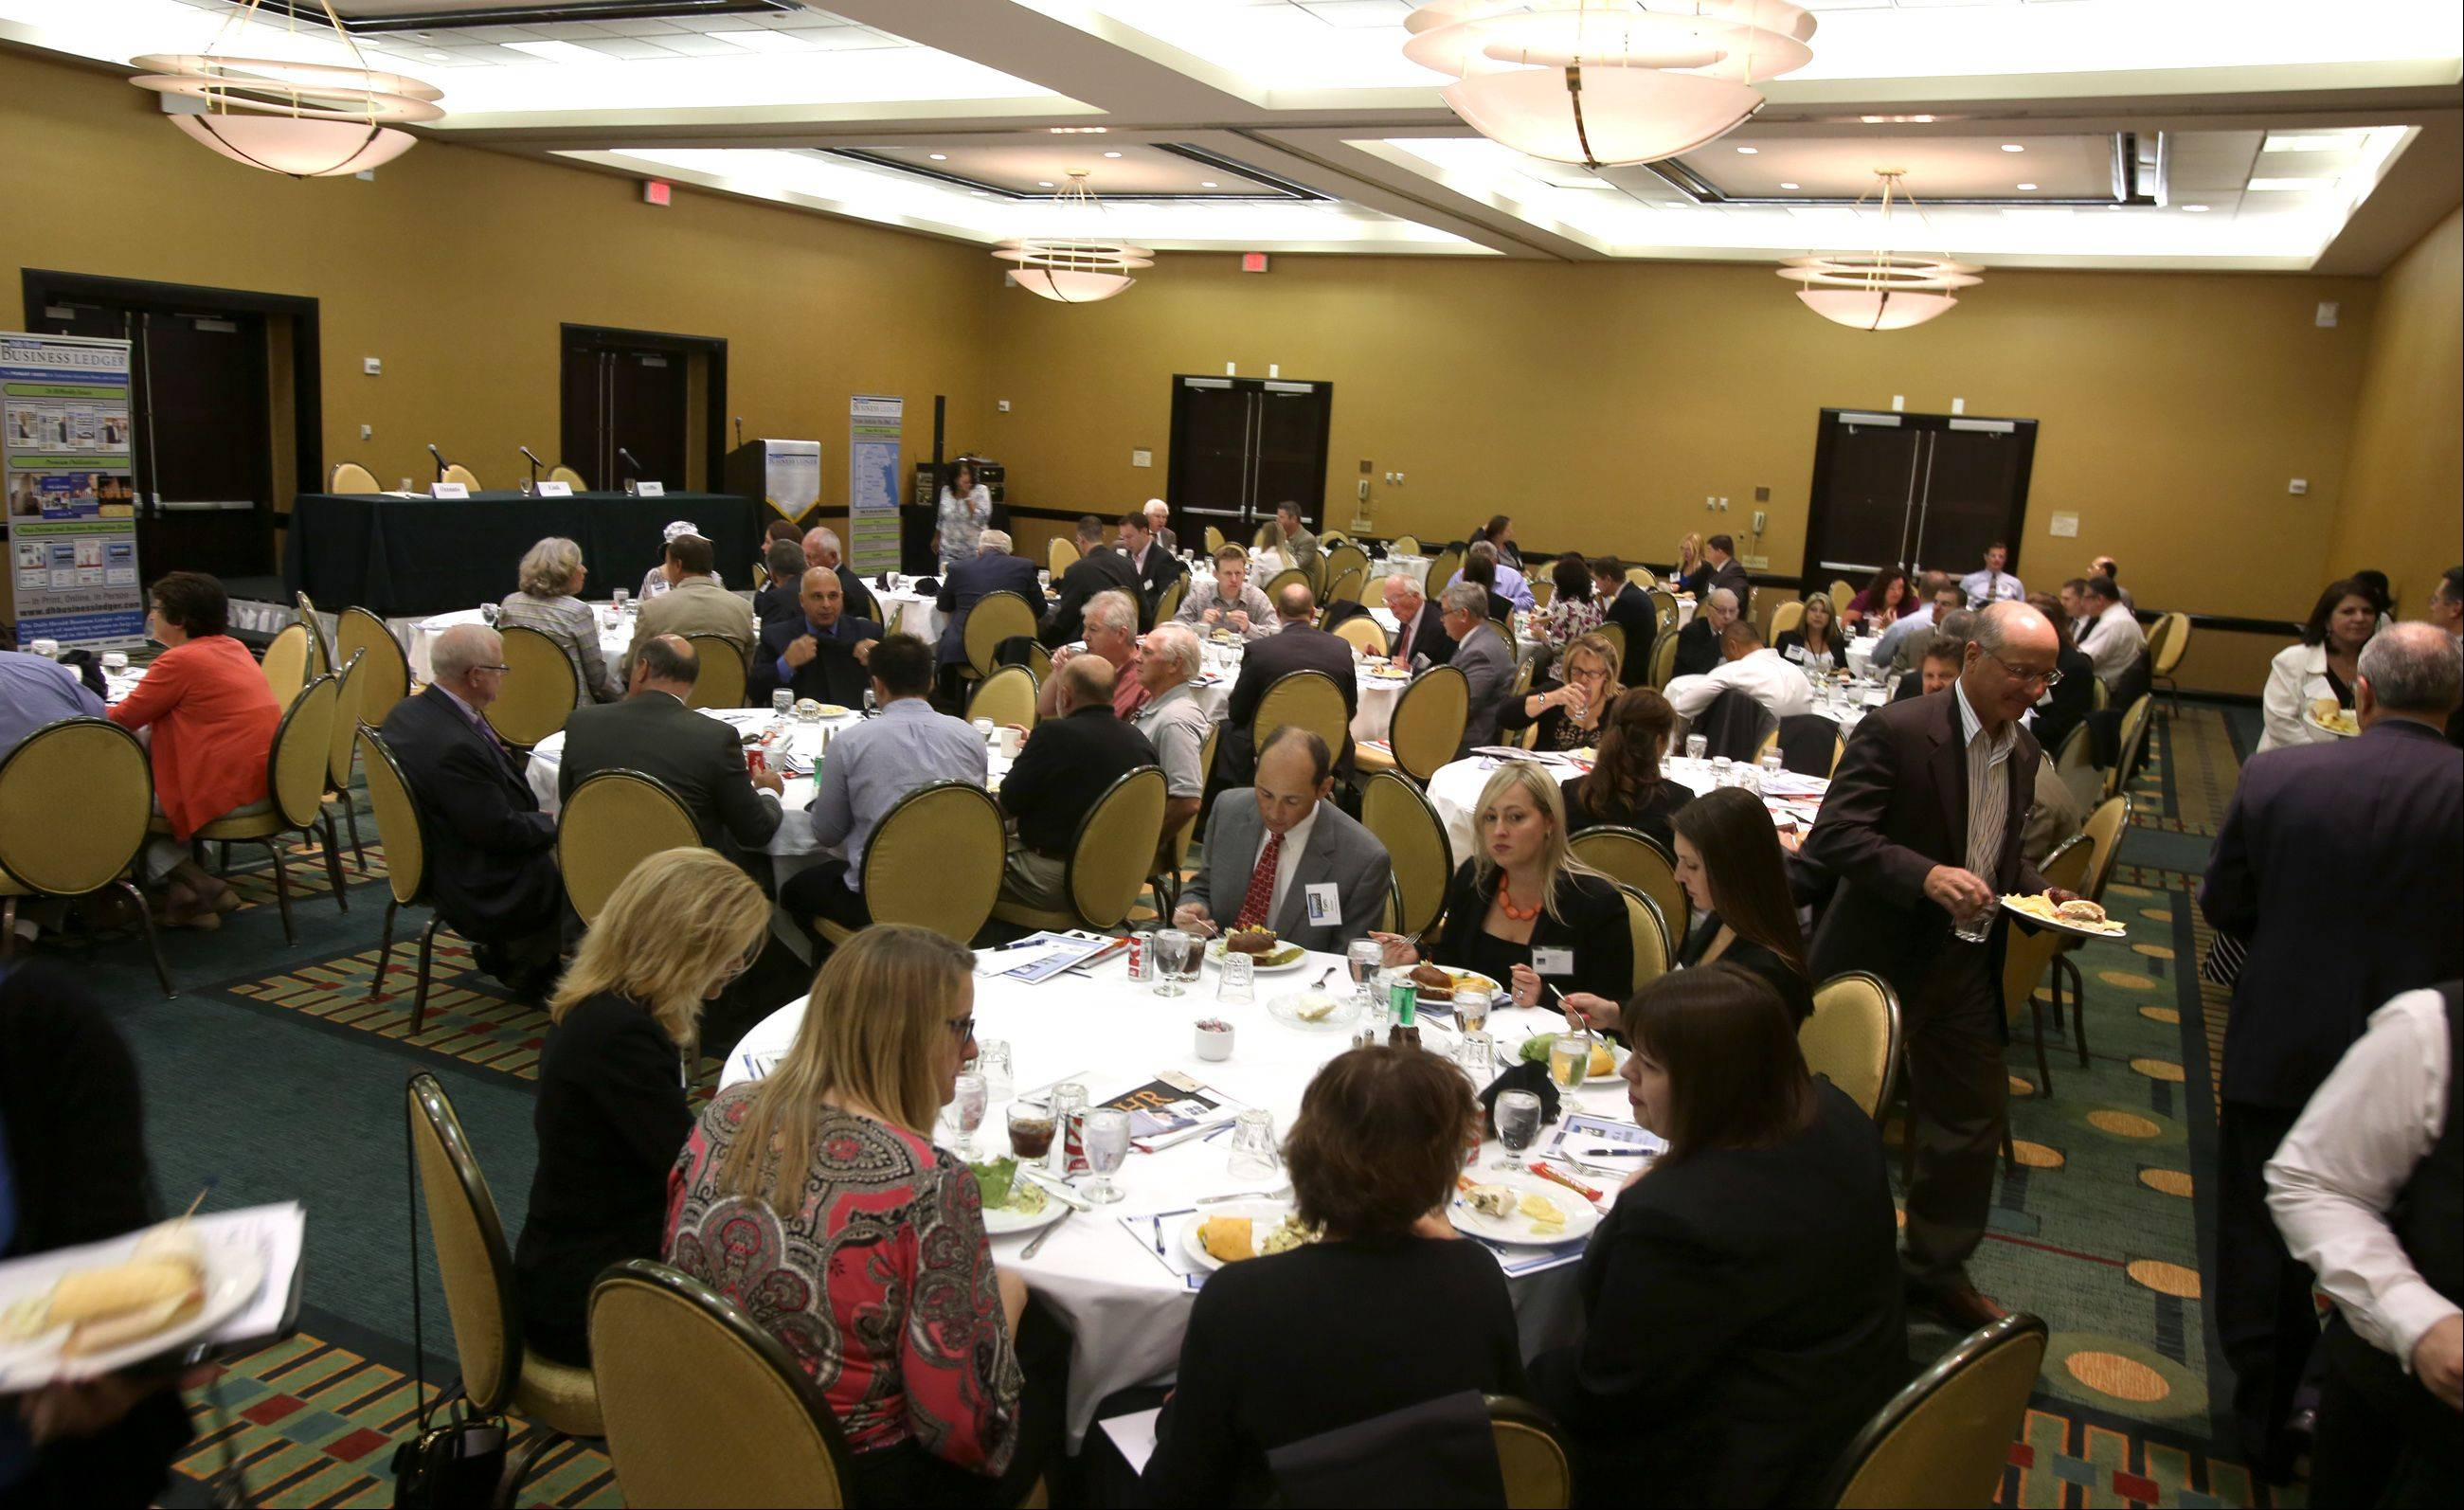 The Newsmaker's Forum focused on Managing a Family Business Thursday. It was held at the Doubletree by Hilton Hotel in Downers Grove.